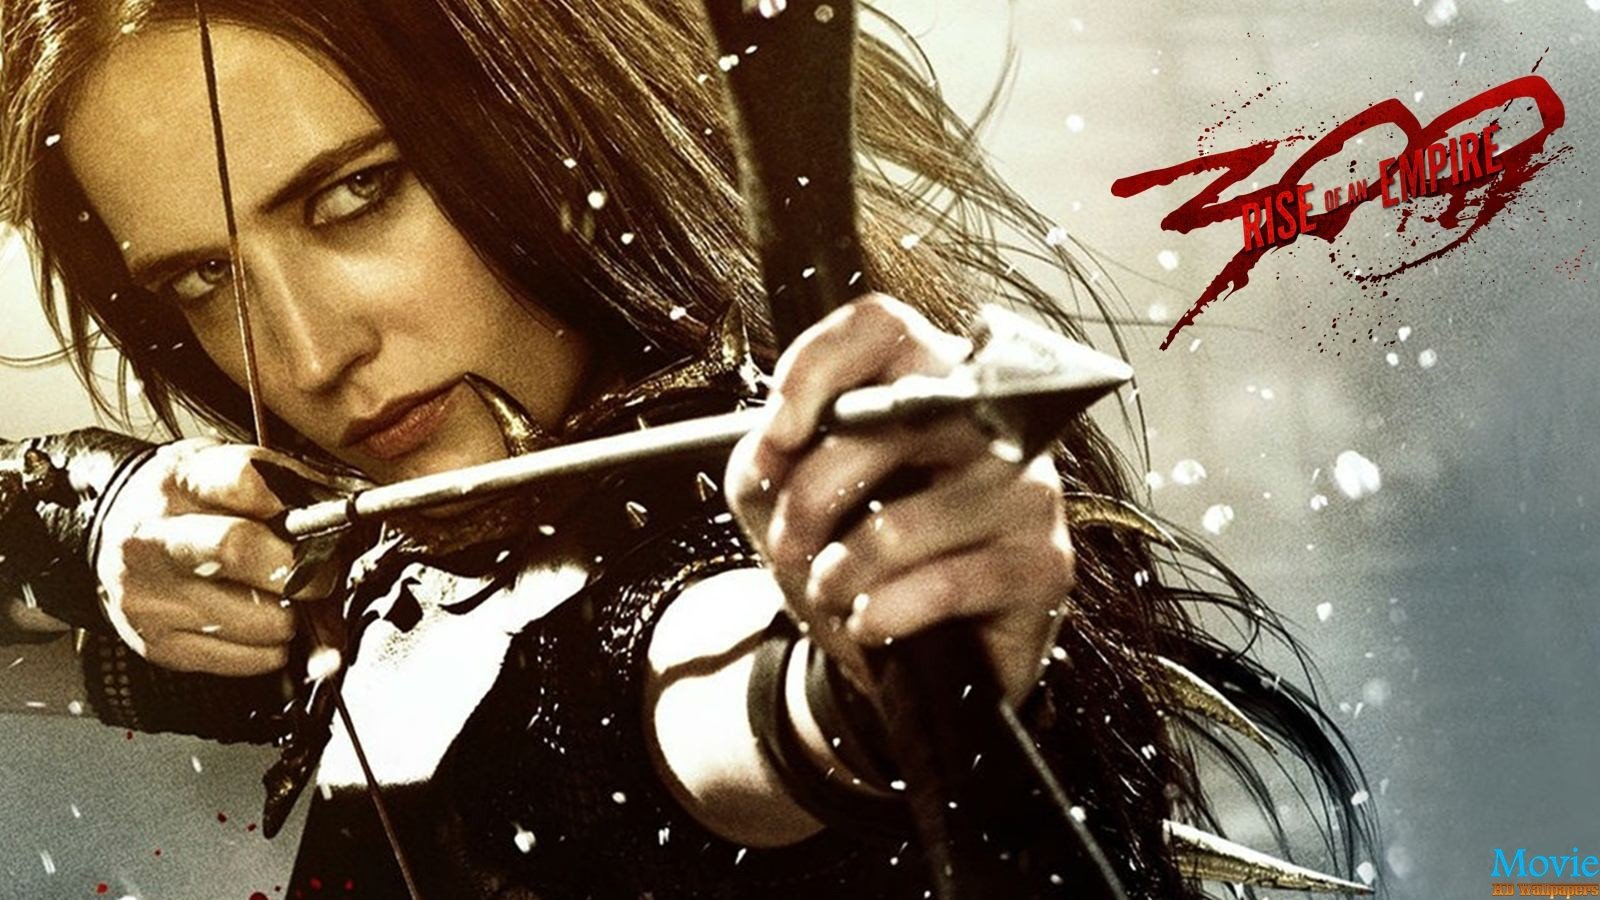 300 rise of an empire free download in hindi 720p